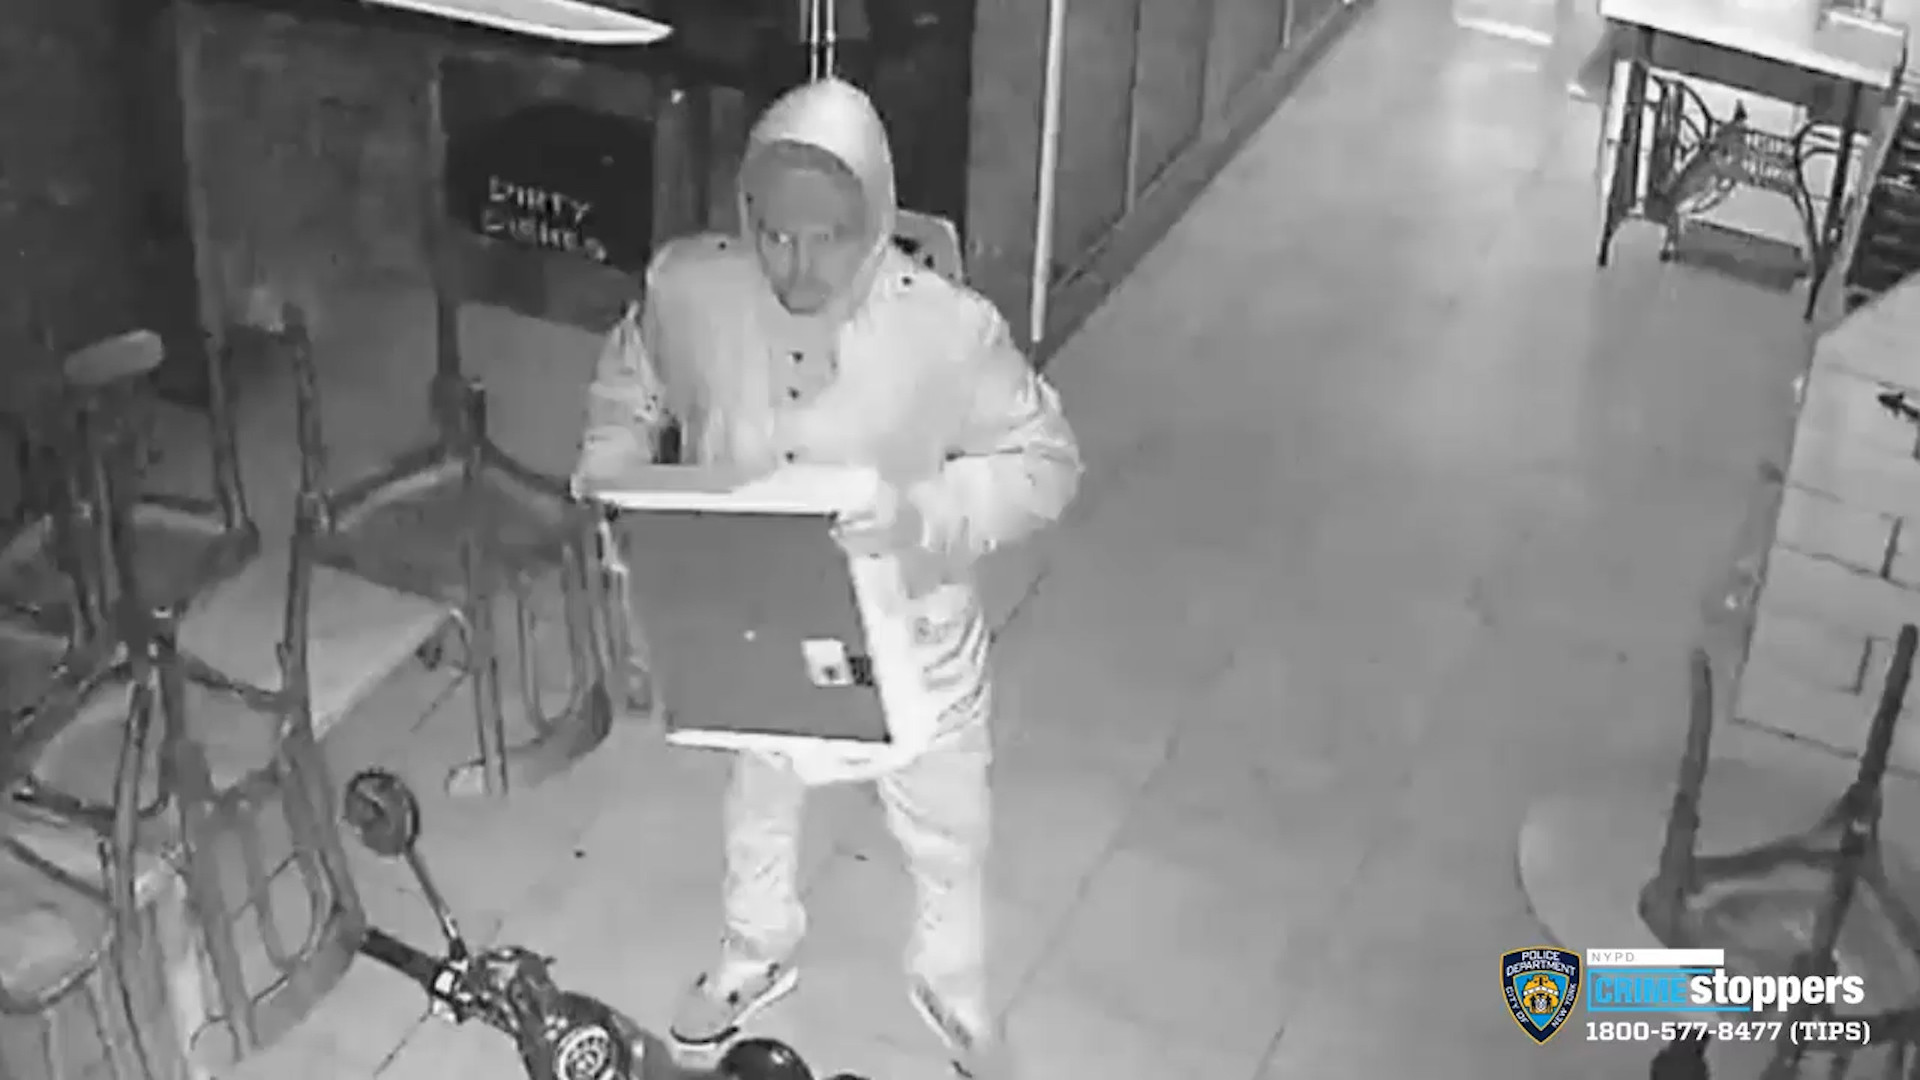 SEE IT: Crooks steal cash register from Brooklyn bistro: police